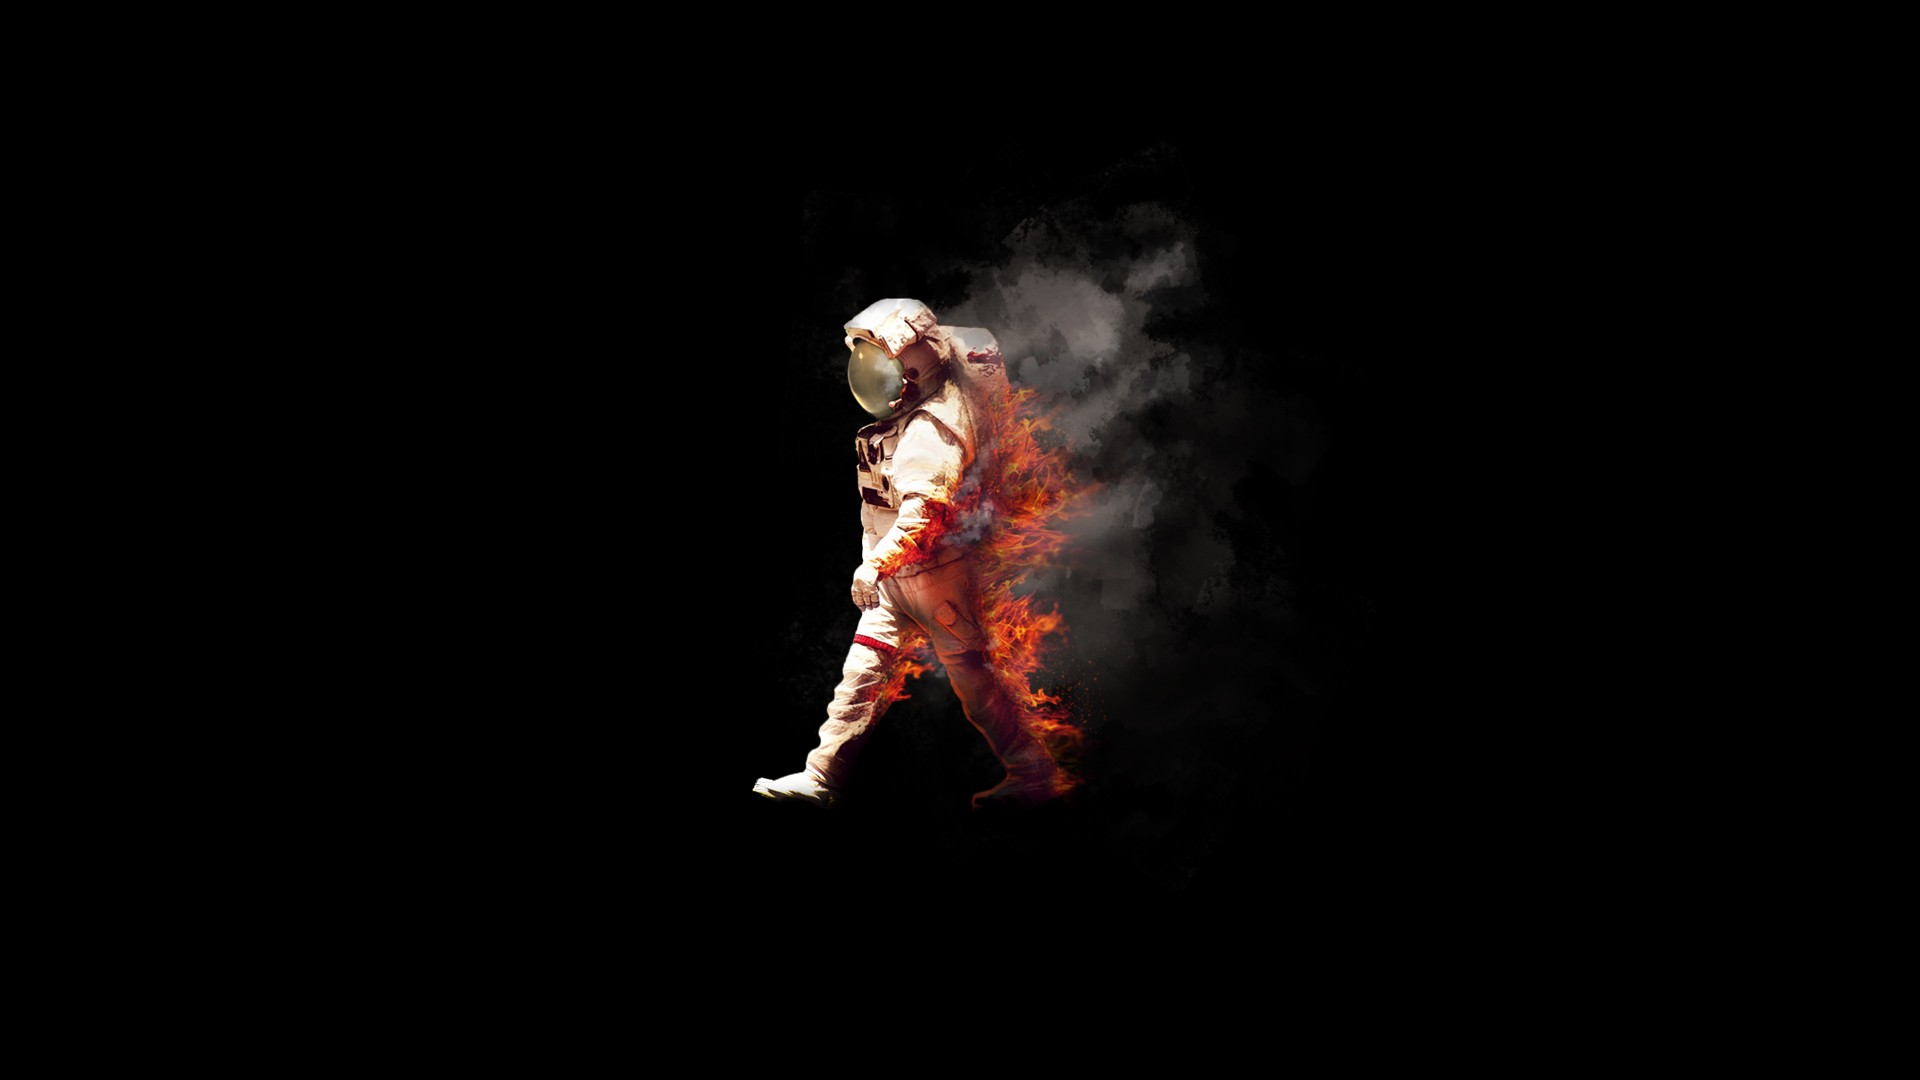 Hd Love Wallpapers For Mobile Free Download Burning Astronaut Spaceman Fire Nasa Spacesuit